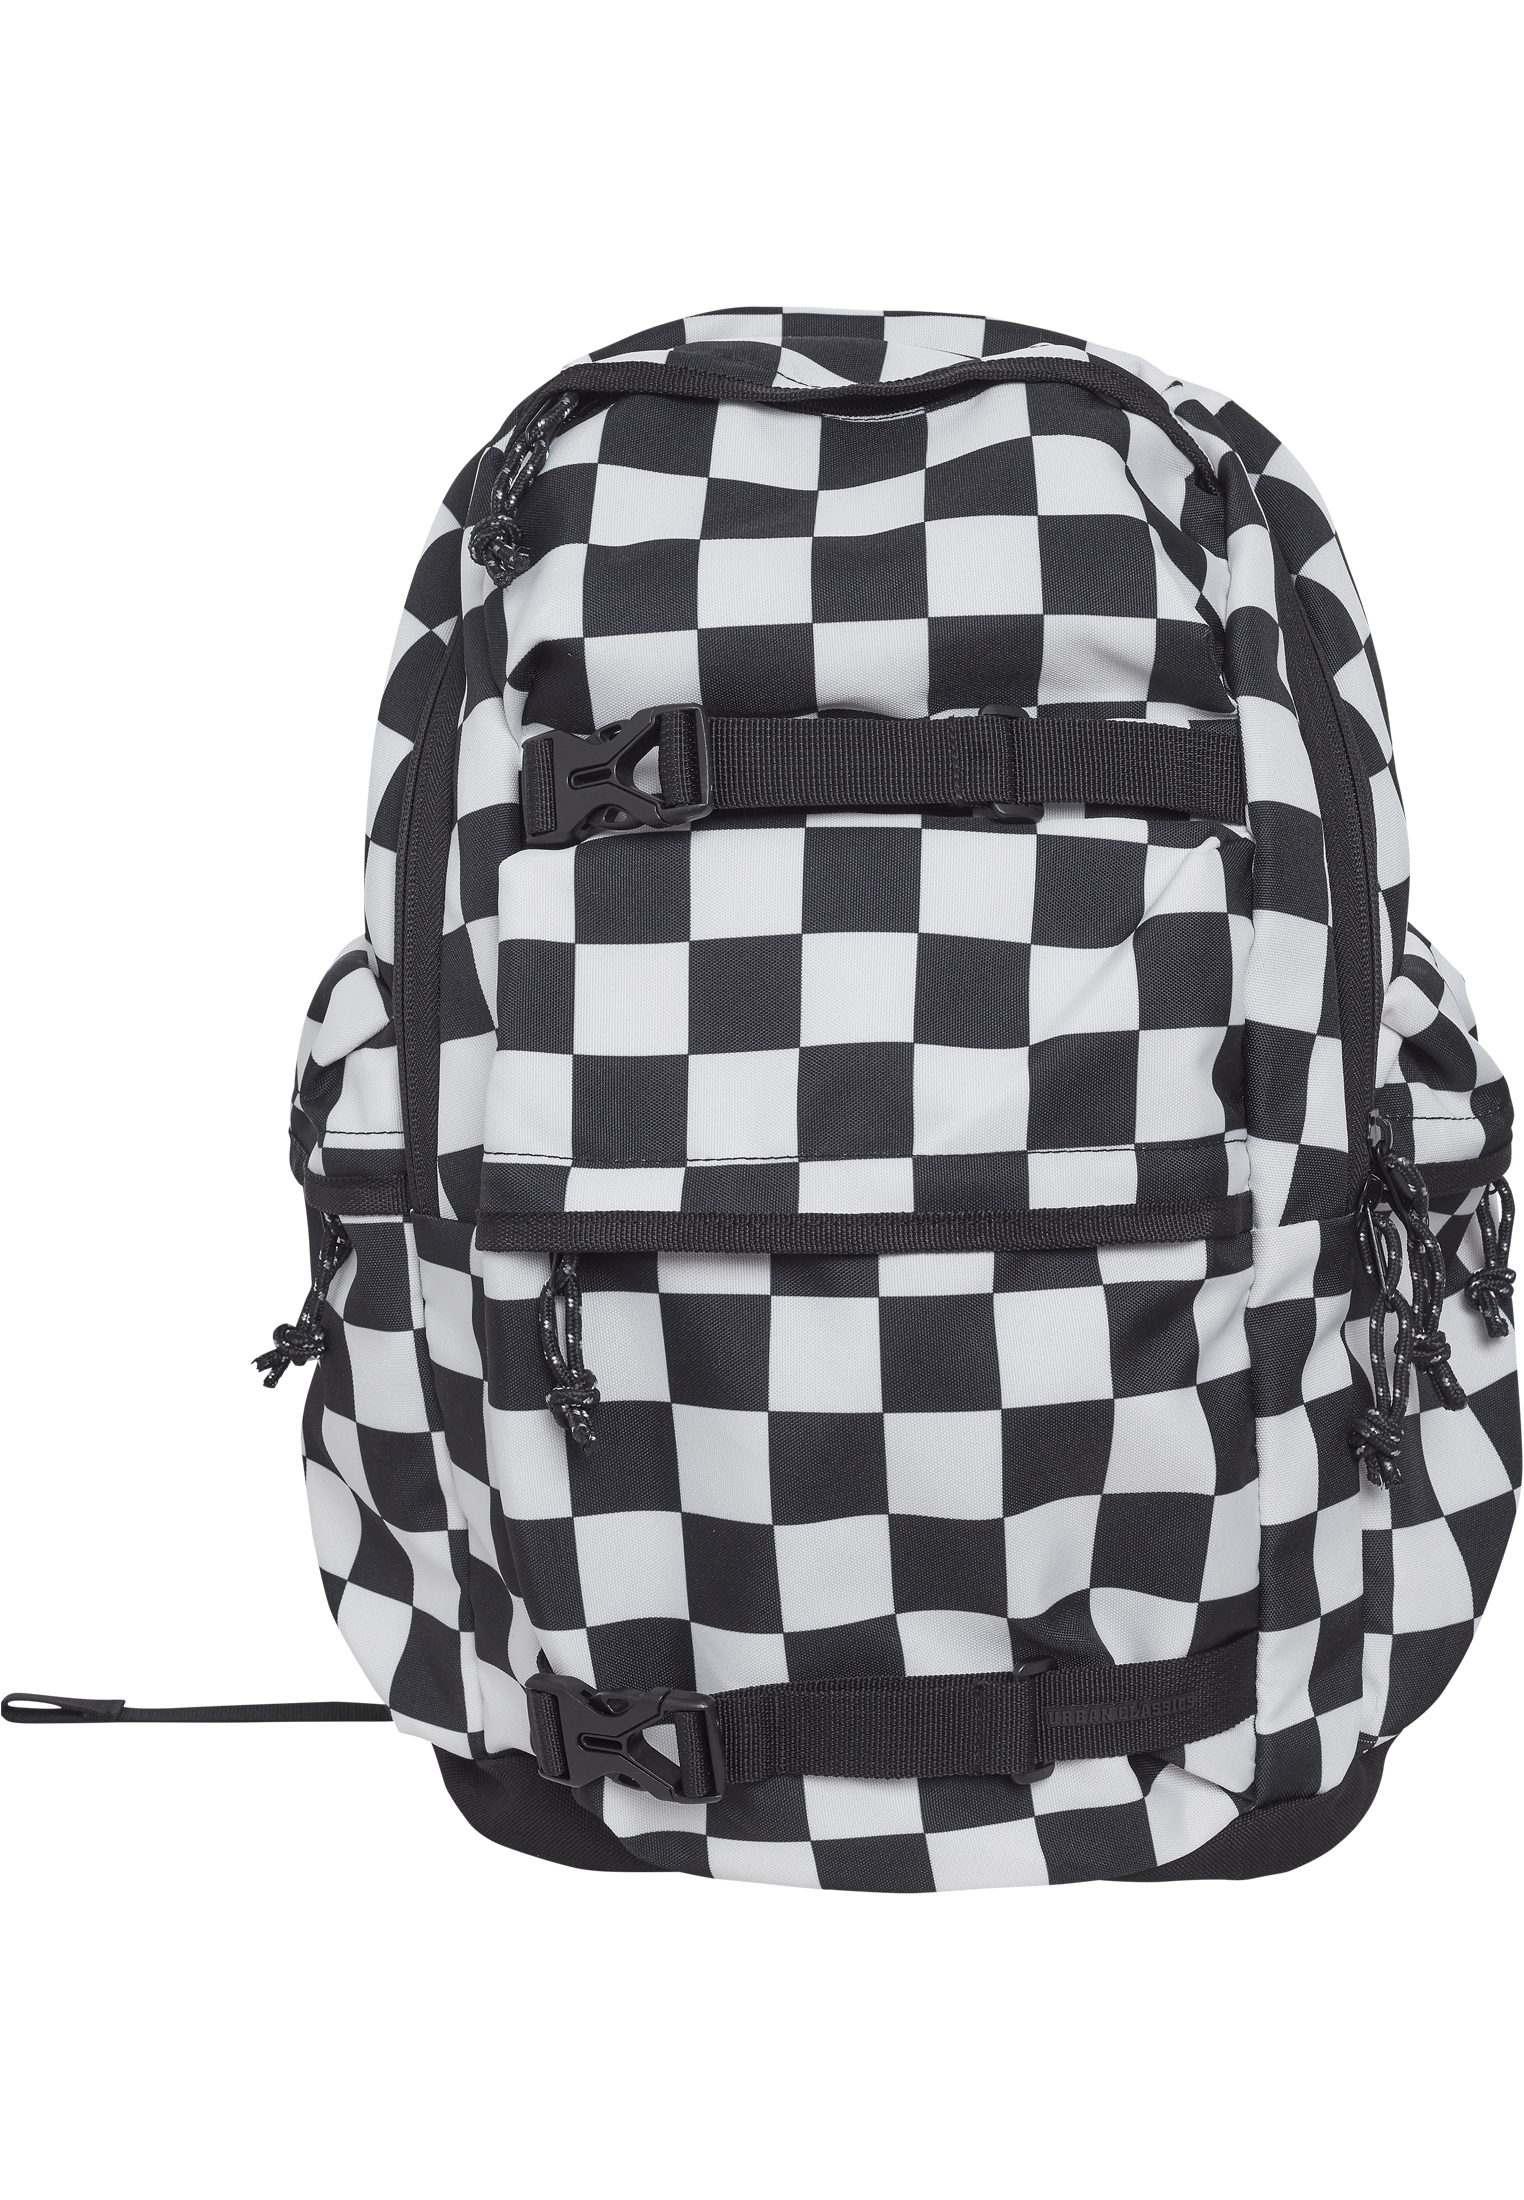 urban classics backpack checker black white herren rucksack schwarz wei 508739 bei kapatcha. Black Bedroom Furniture Sets. Home Design Ideas